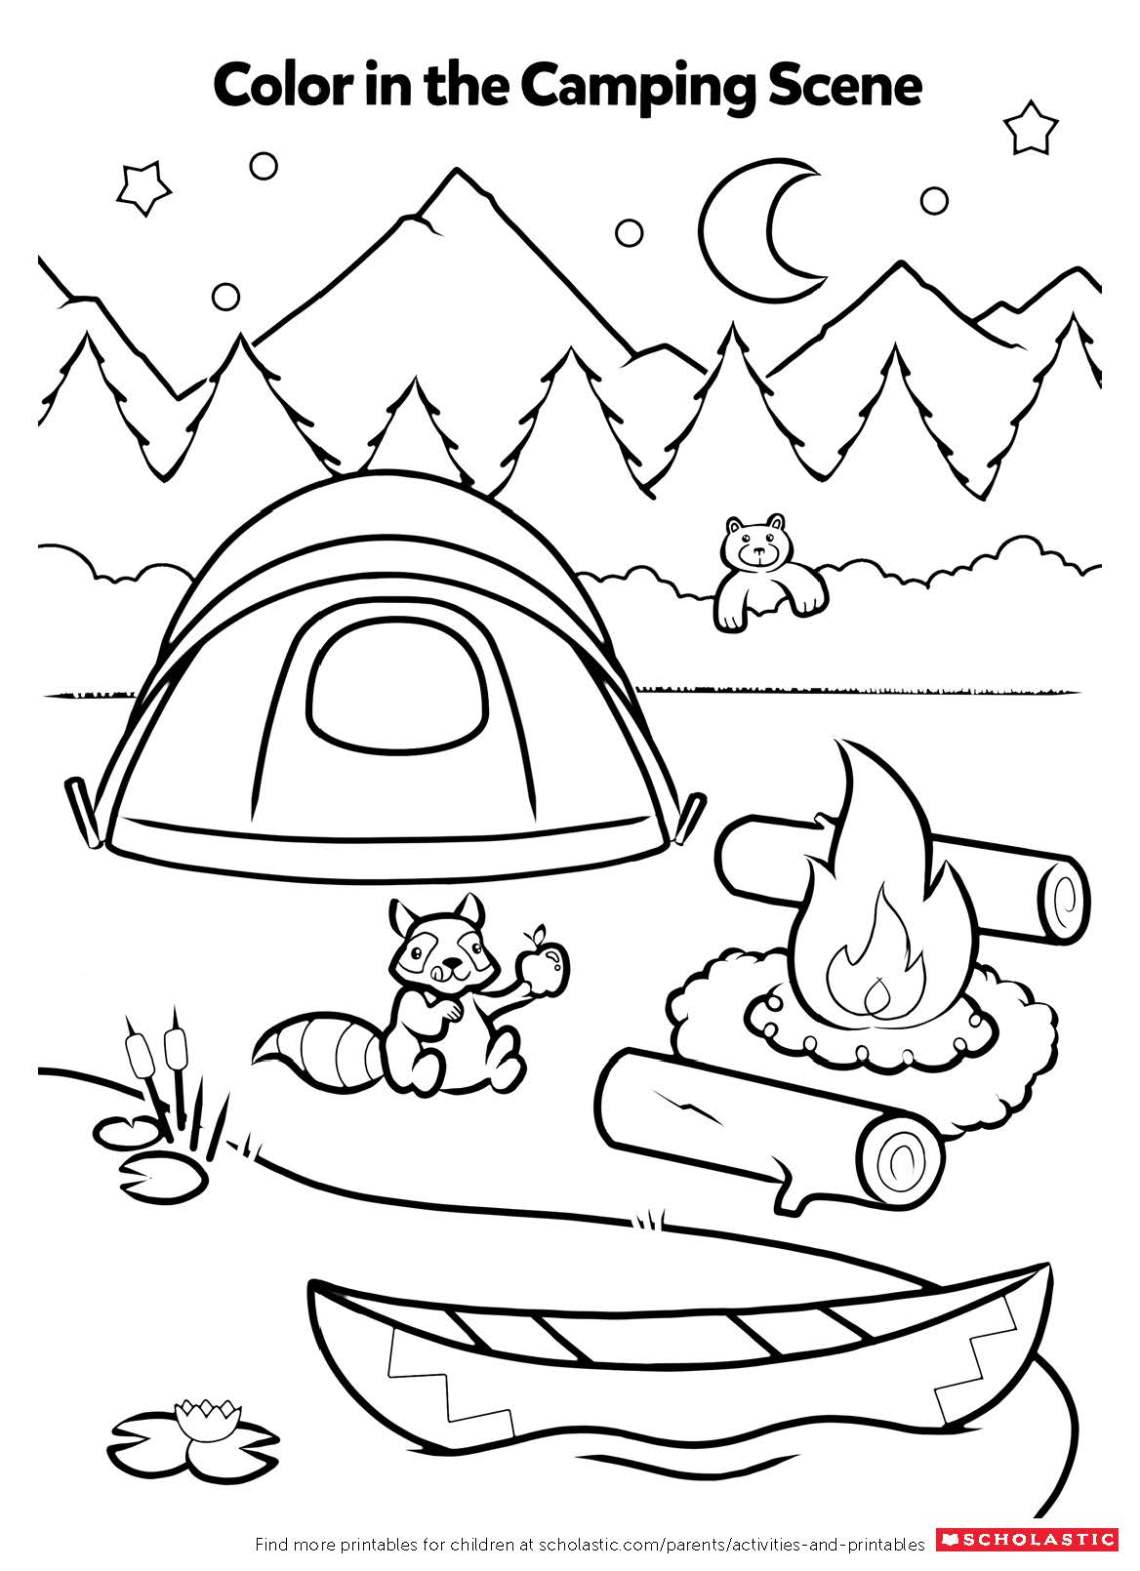 Campfire Coloring Activity | Worksheets & Printables ... | colouring worksheets for preschoolers